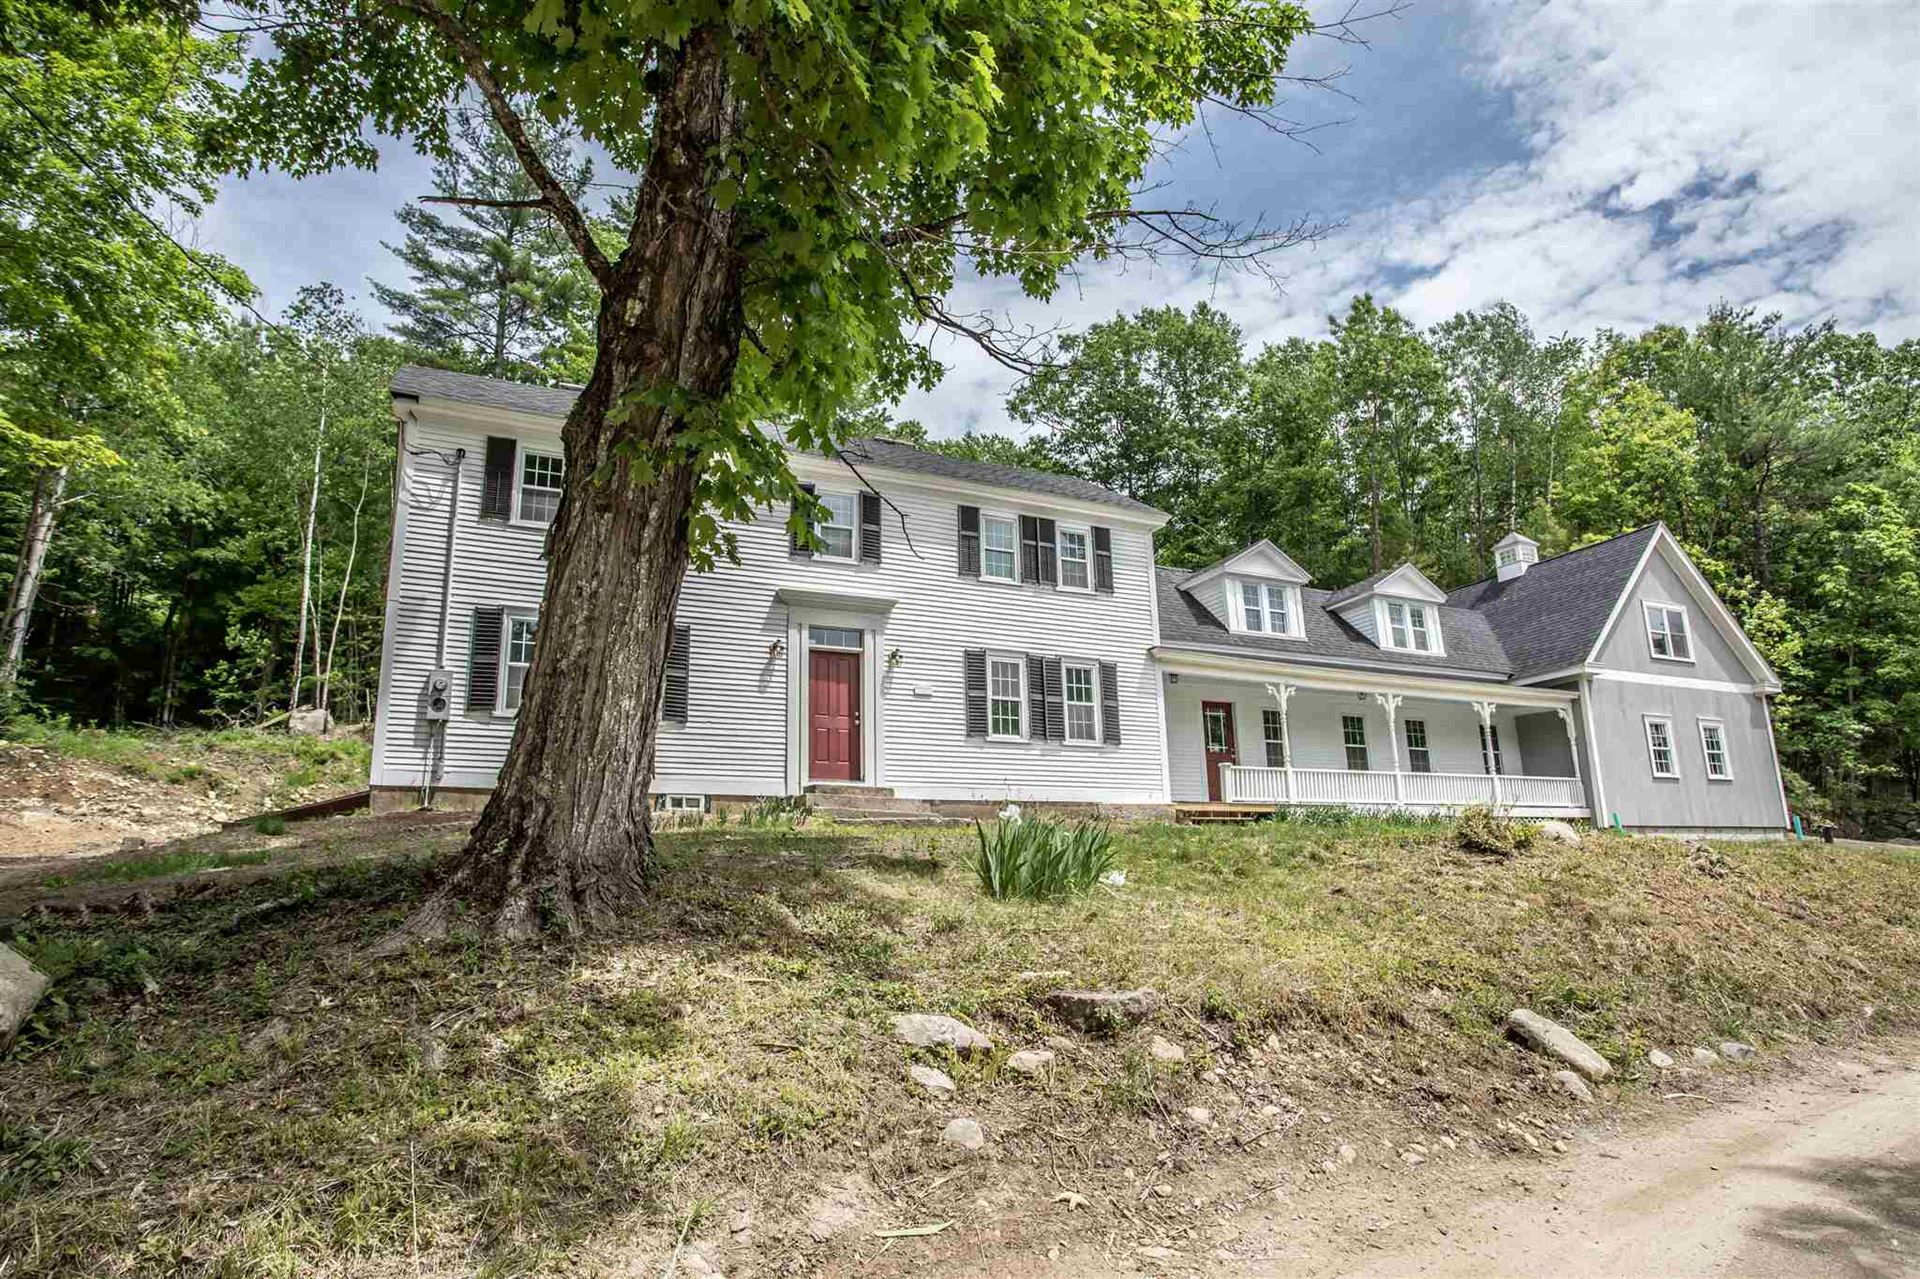 79 Horace Greeley Road, Amherst, NH 03031 - #: 4806651